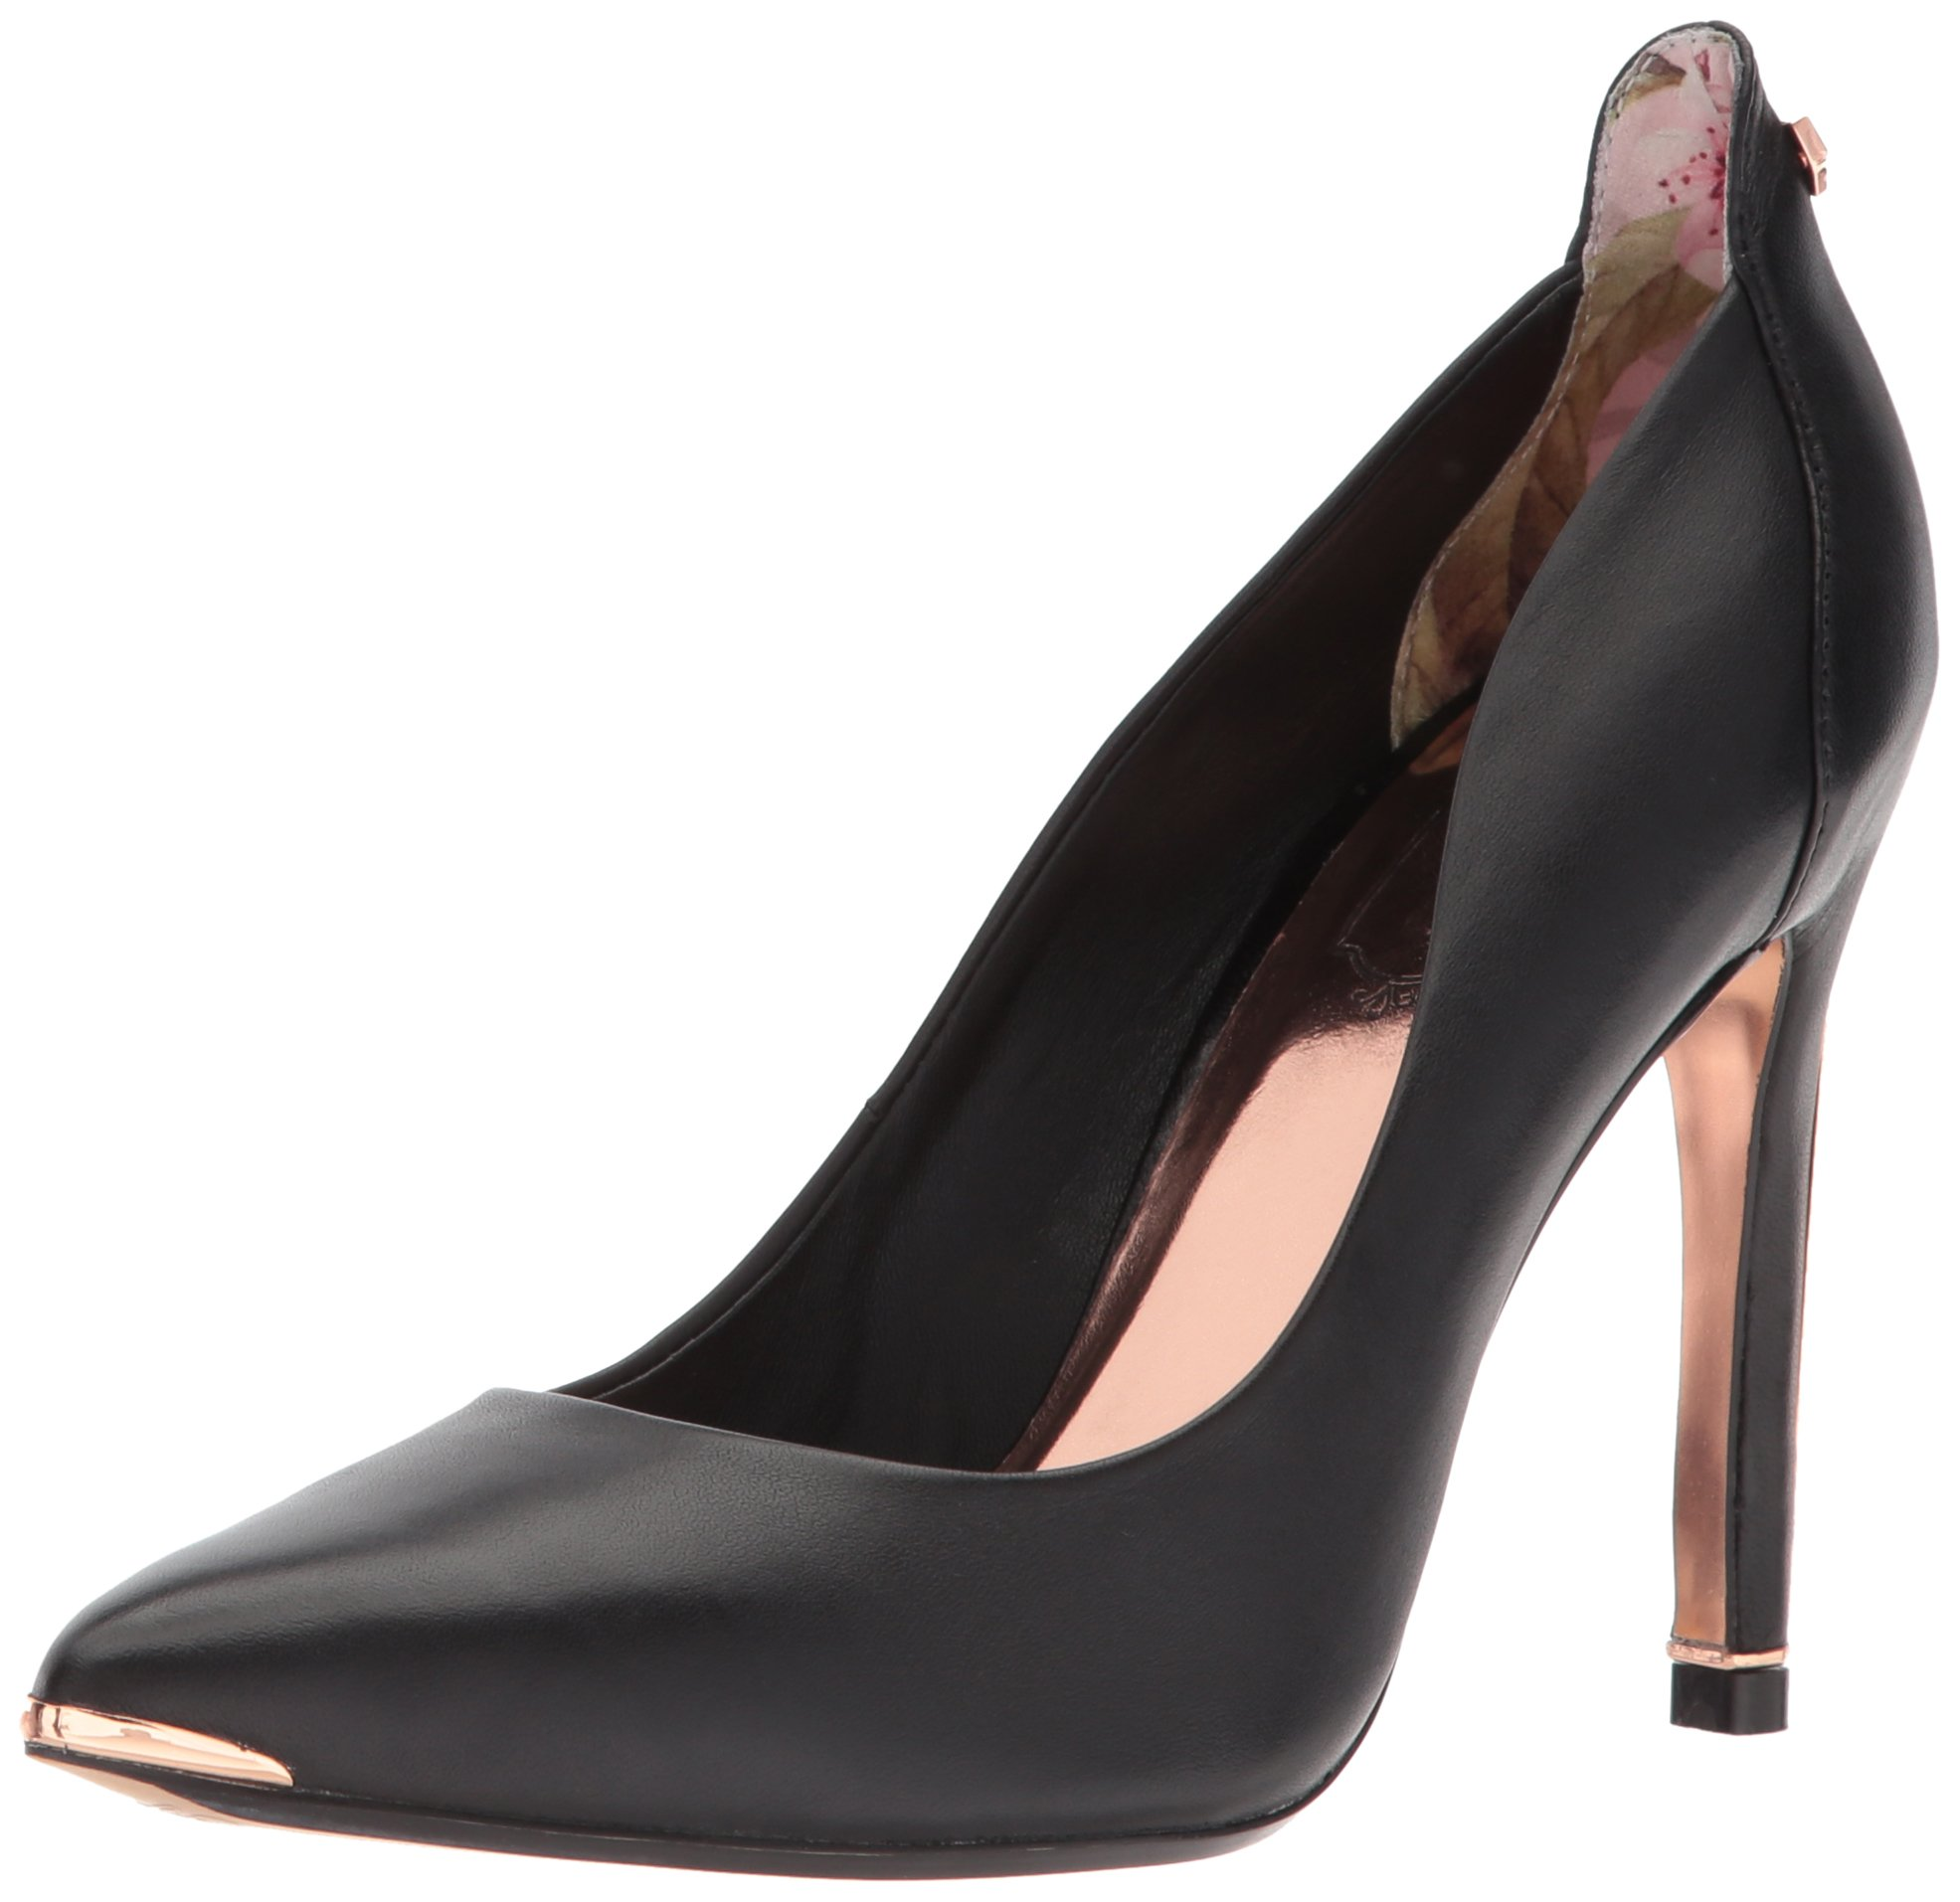 Ted Baker Women's Melisah Pump, Black, 8 B(M) US